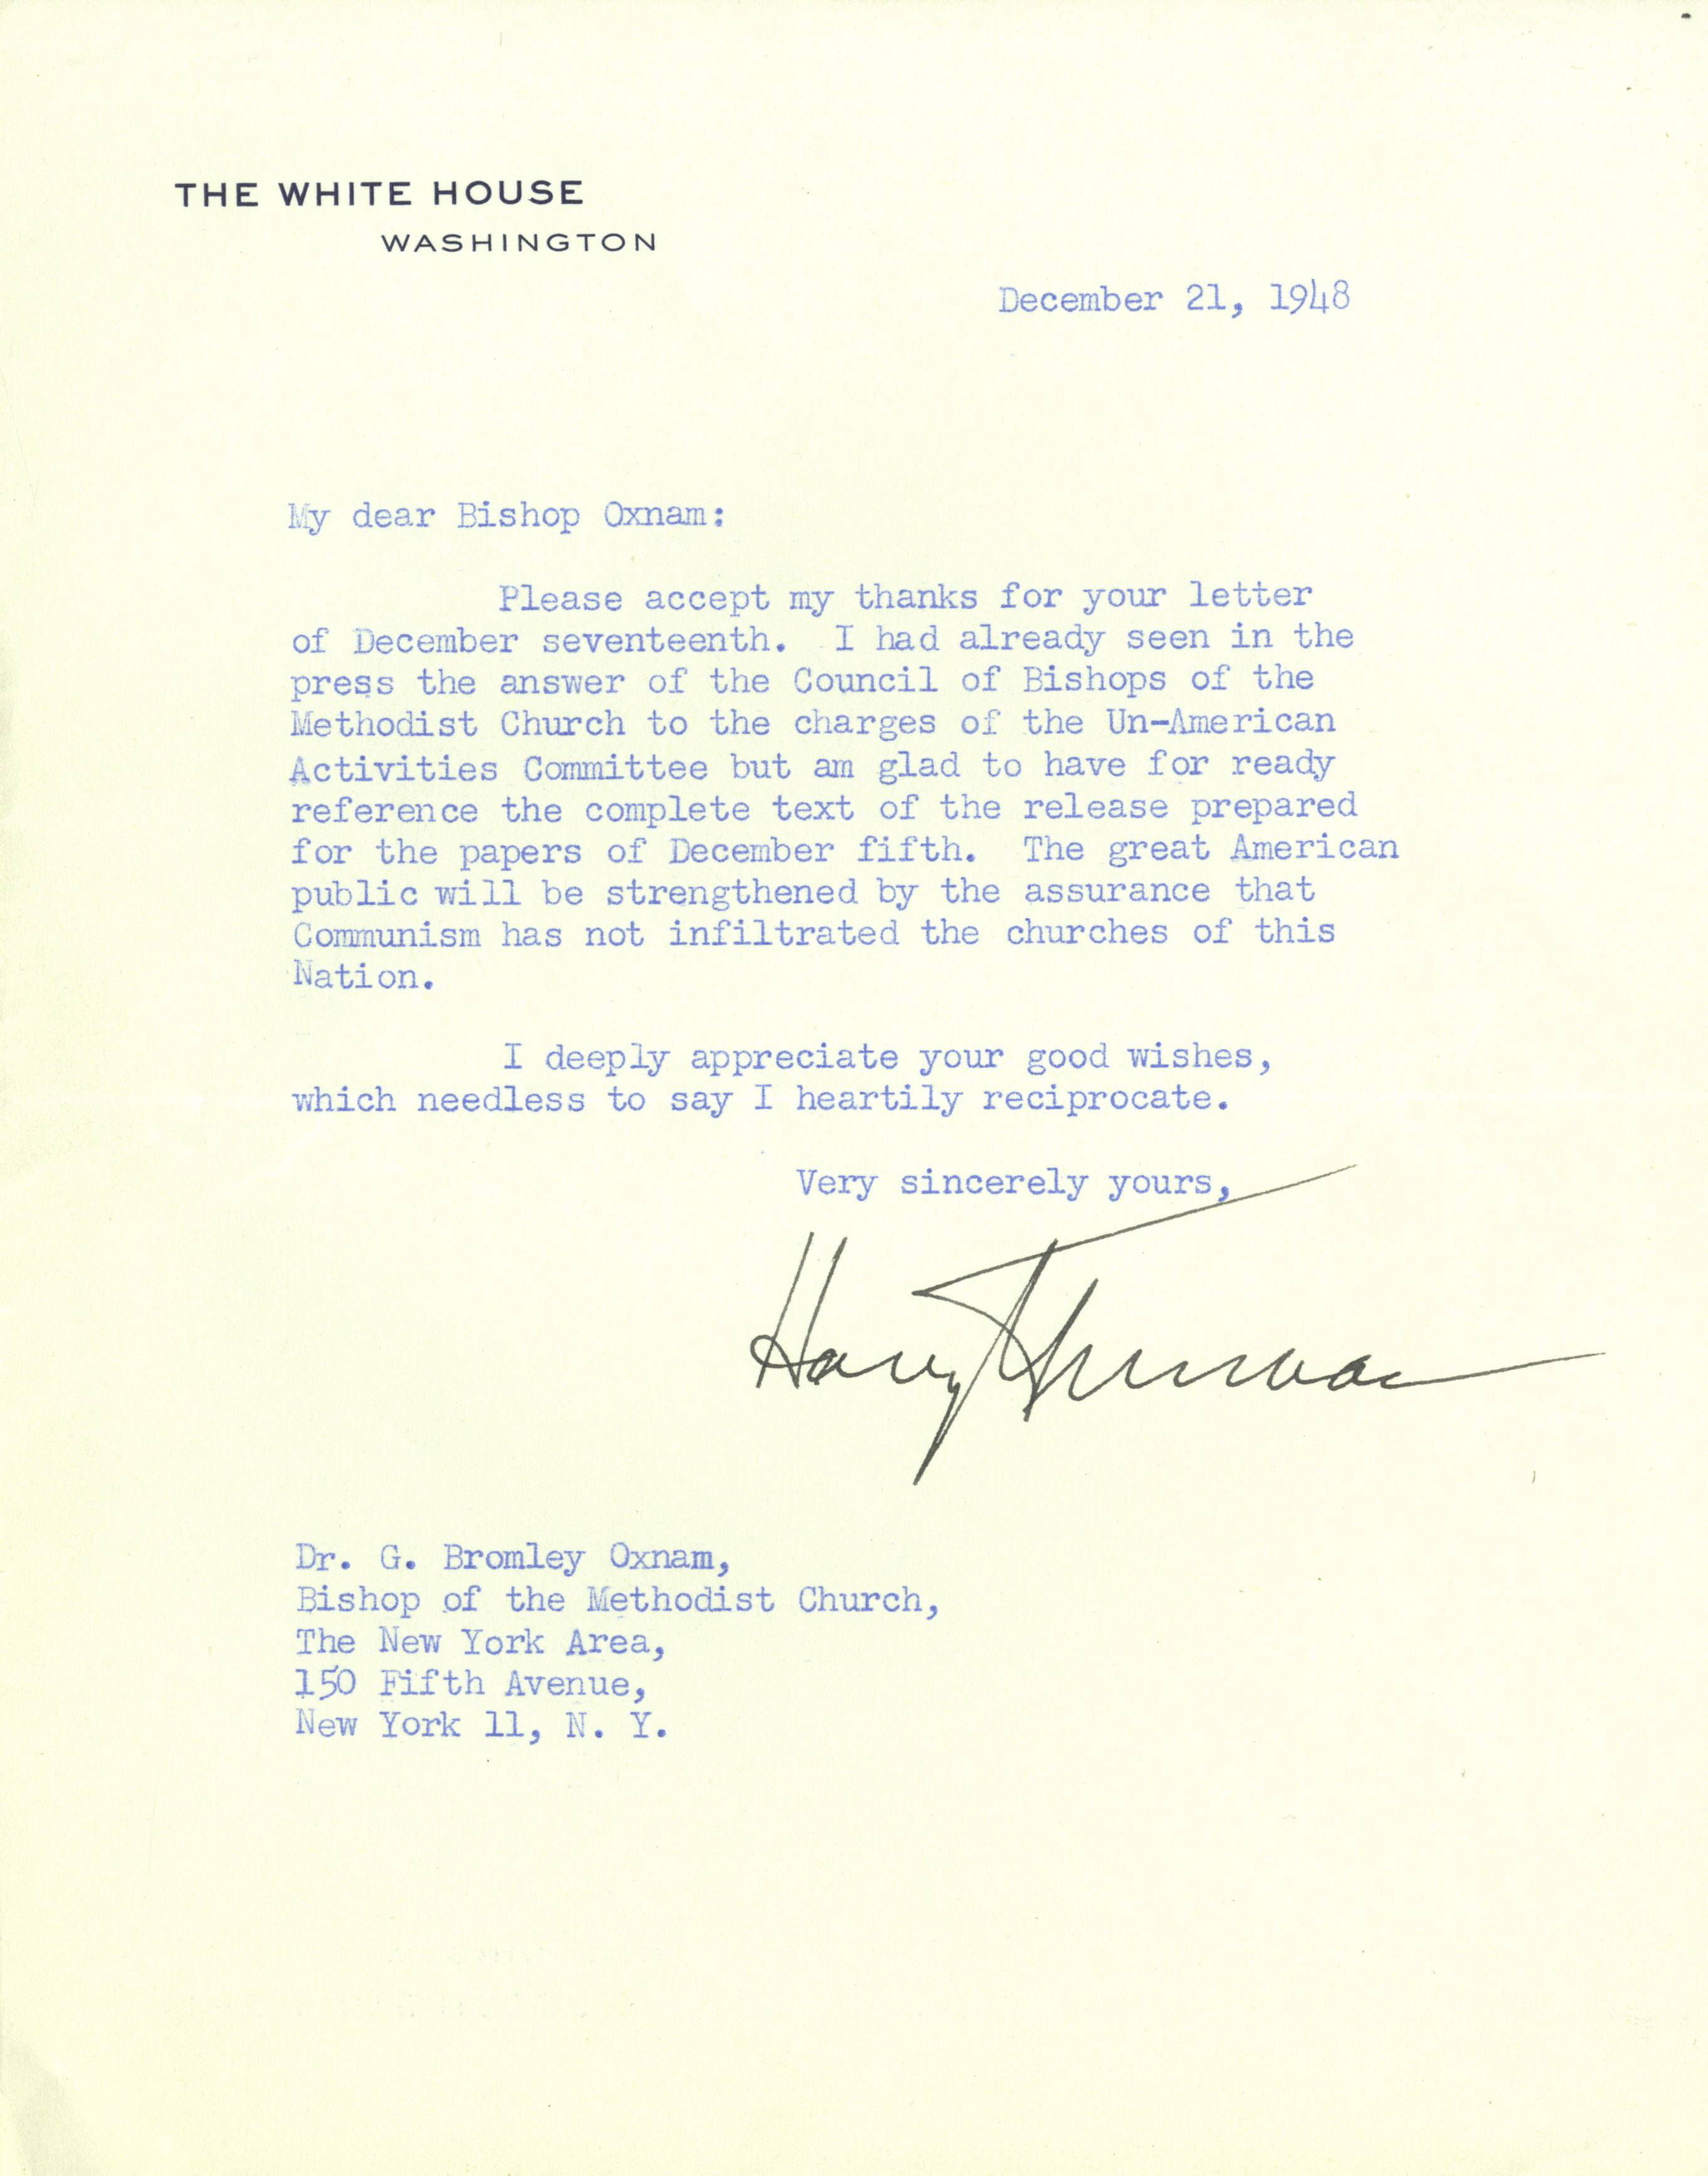 letter to truman 1946 letter to us president truman, january 18, 1946 january 18, 1946 there follows substance of letter dated jan 18, 1946 addressed to president truman by ho chi-minh just received by embassy through us army channels: he extends congratulations to president on occasion of opening of first assembly of united nations in london, and.